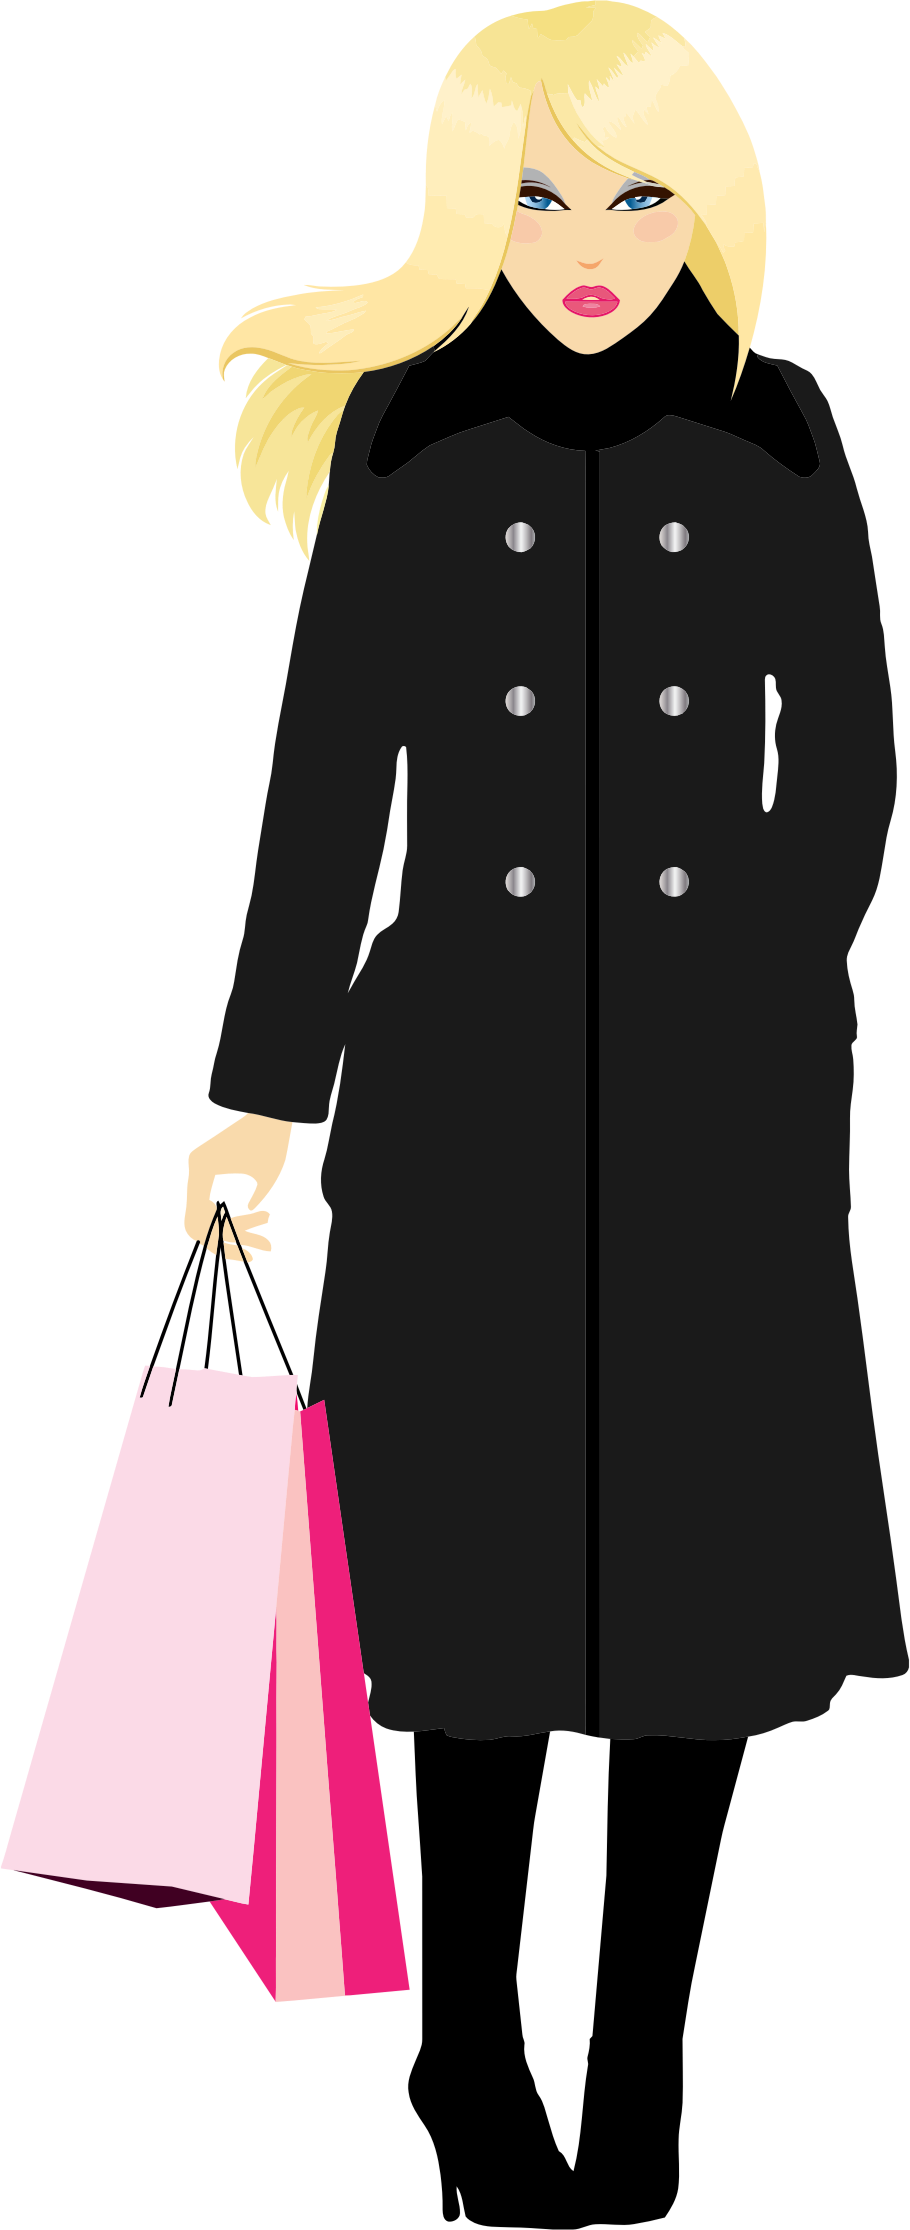 Blonde woman big image. Female clipart shopping